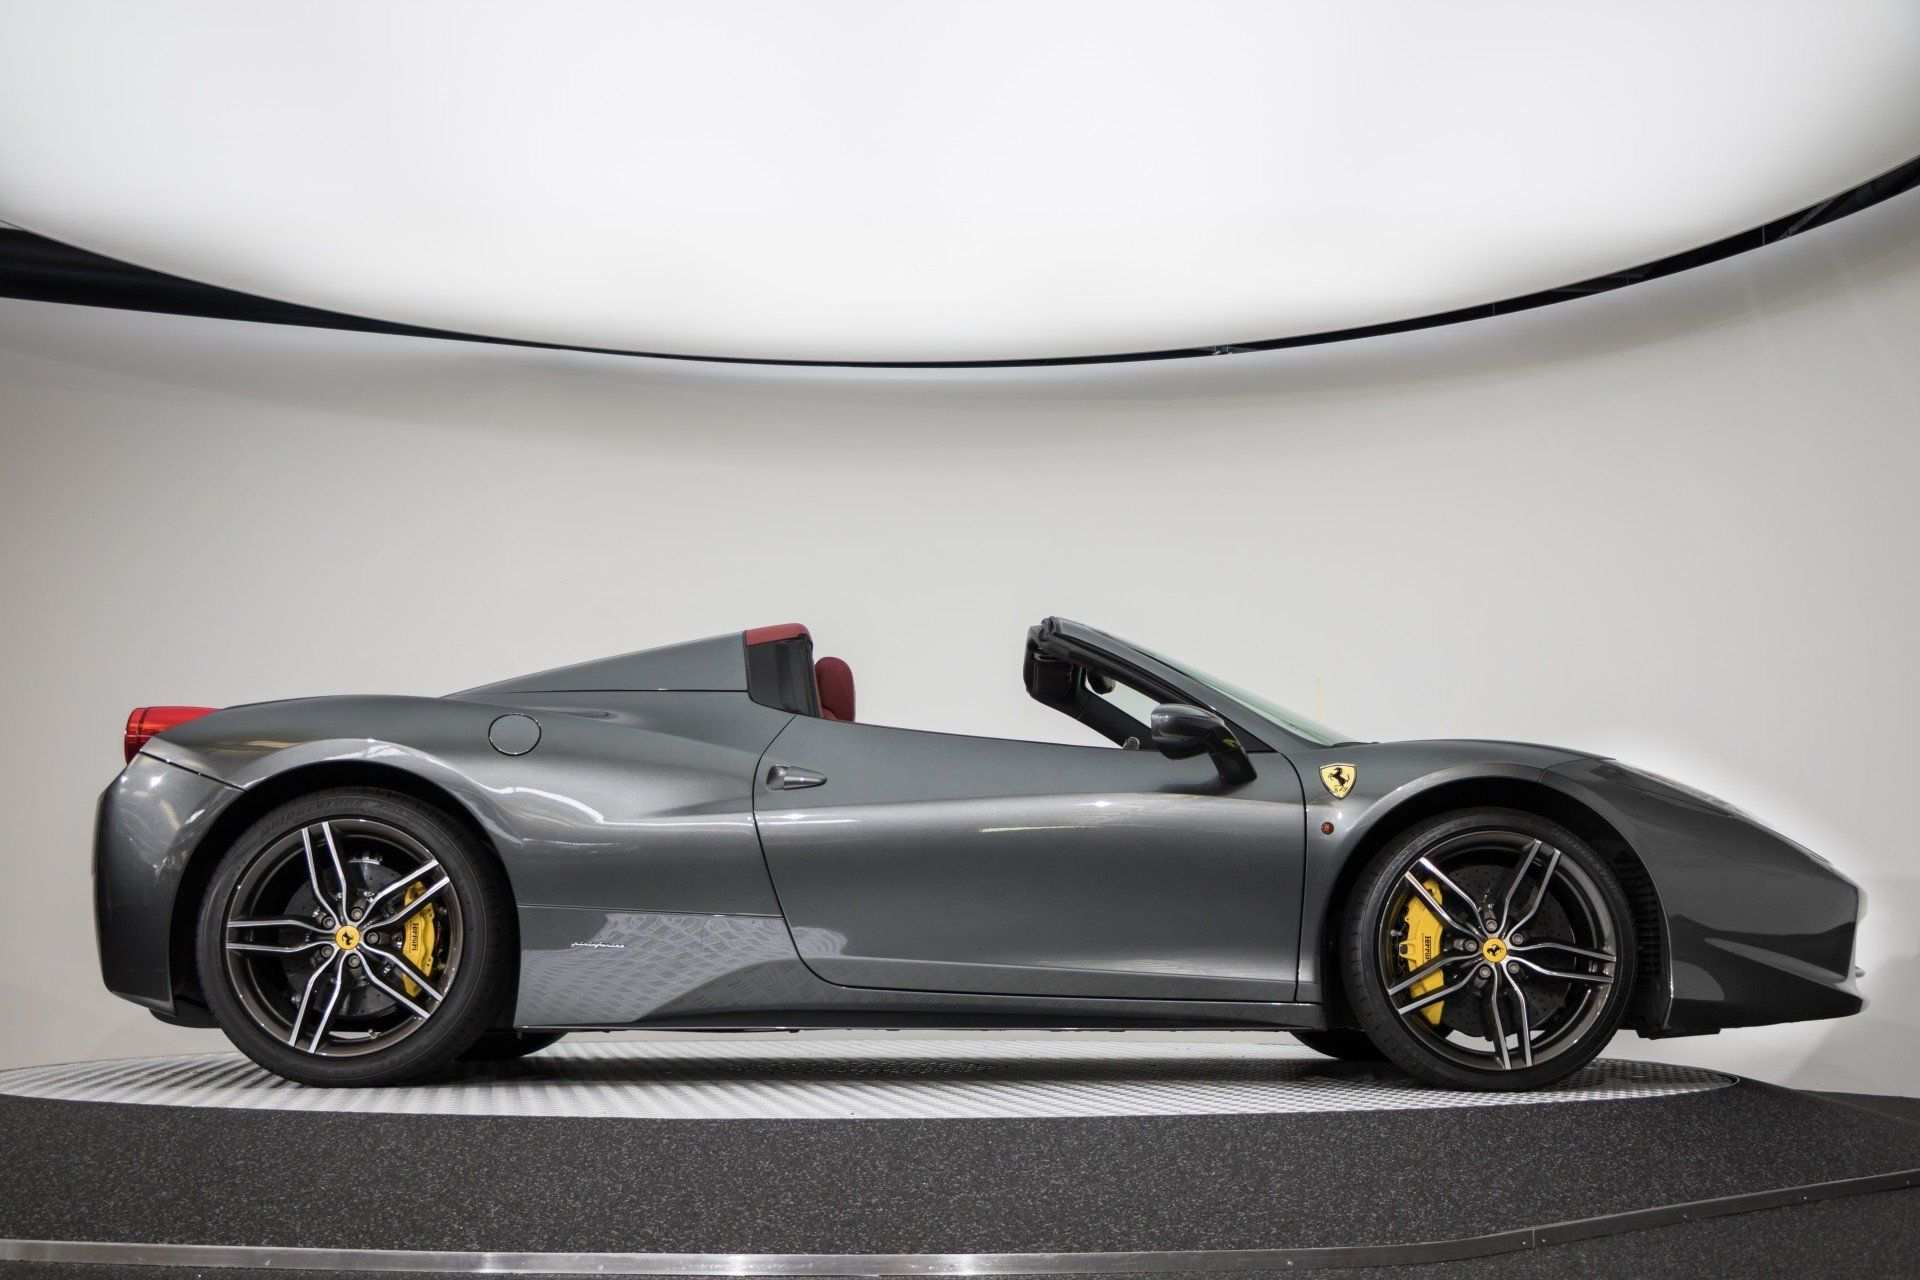 57 New 2020 Ferrari 488 Spider For Sale Exterior and Interior for 2020 Ferrari 488 Spider For Sale